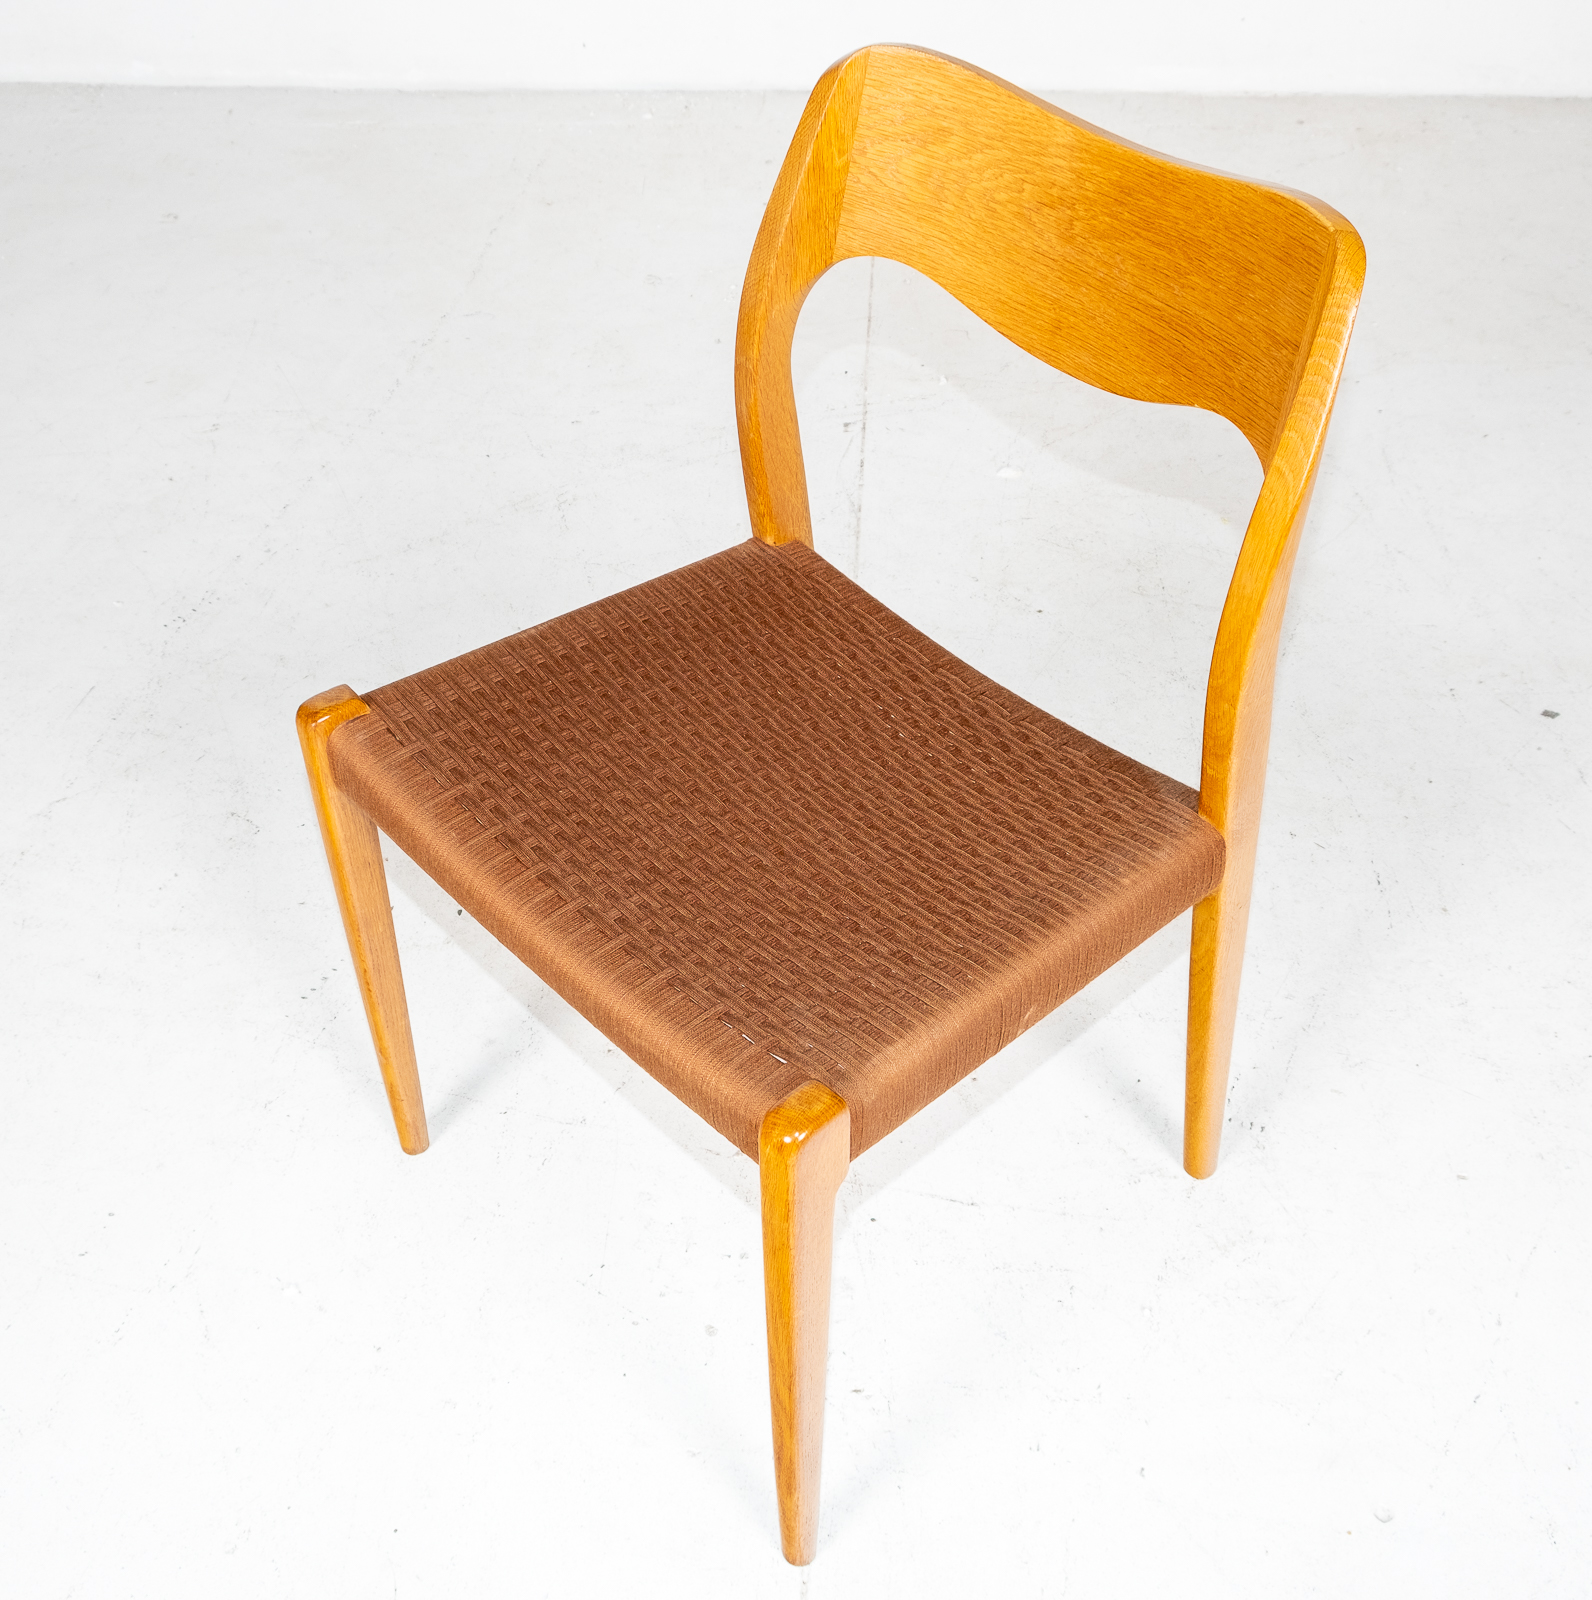 Set Of 6 Model 71 Dining Chairs By Niels Moller In Original Tan Wool Cord, 1960s, Denmark3